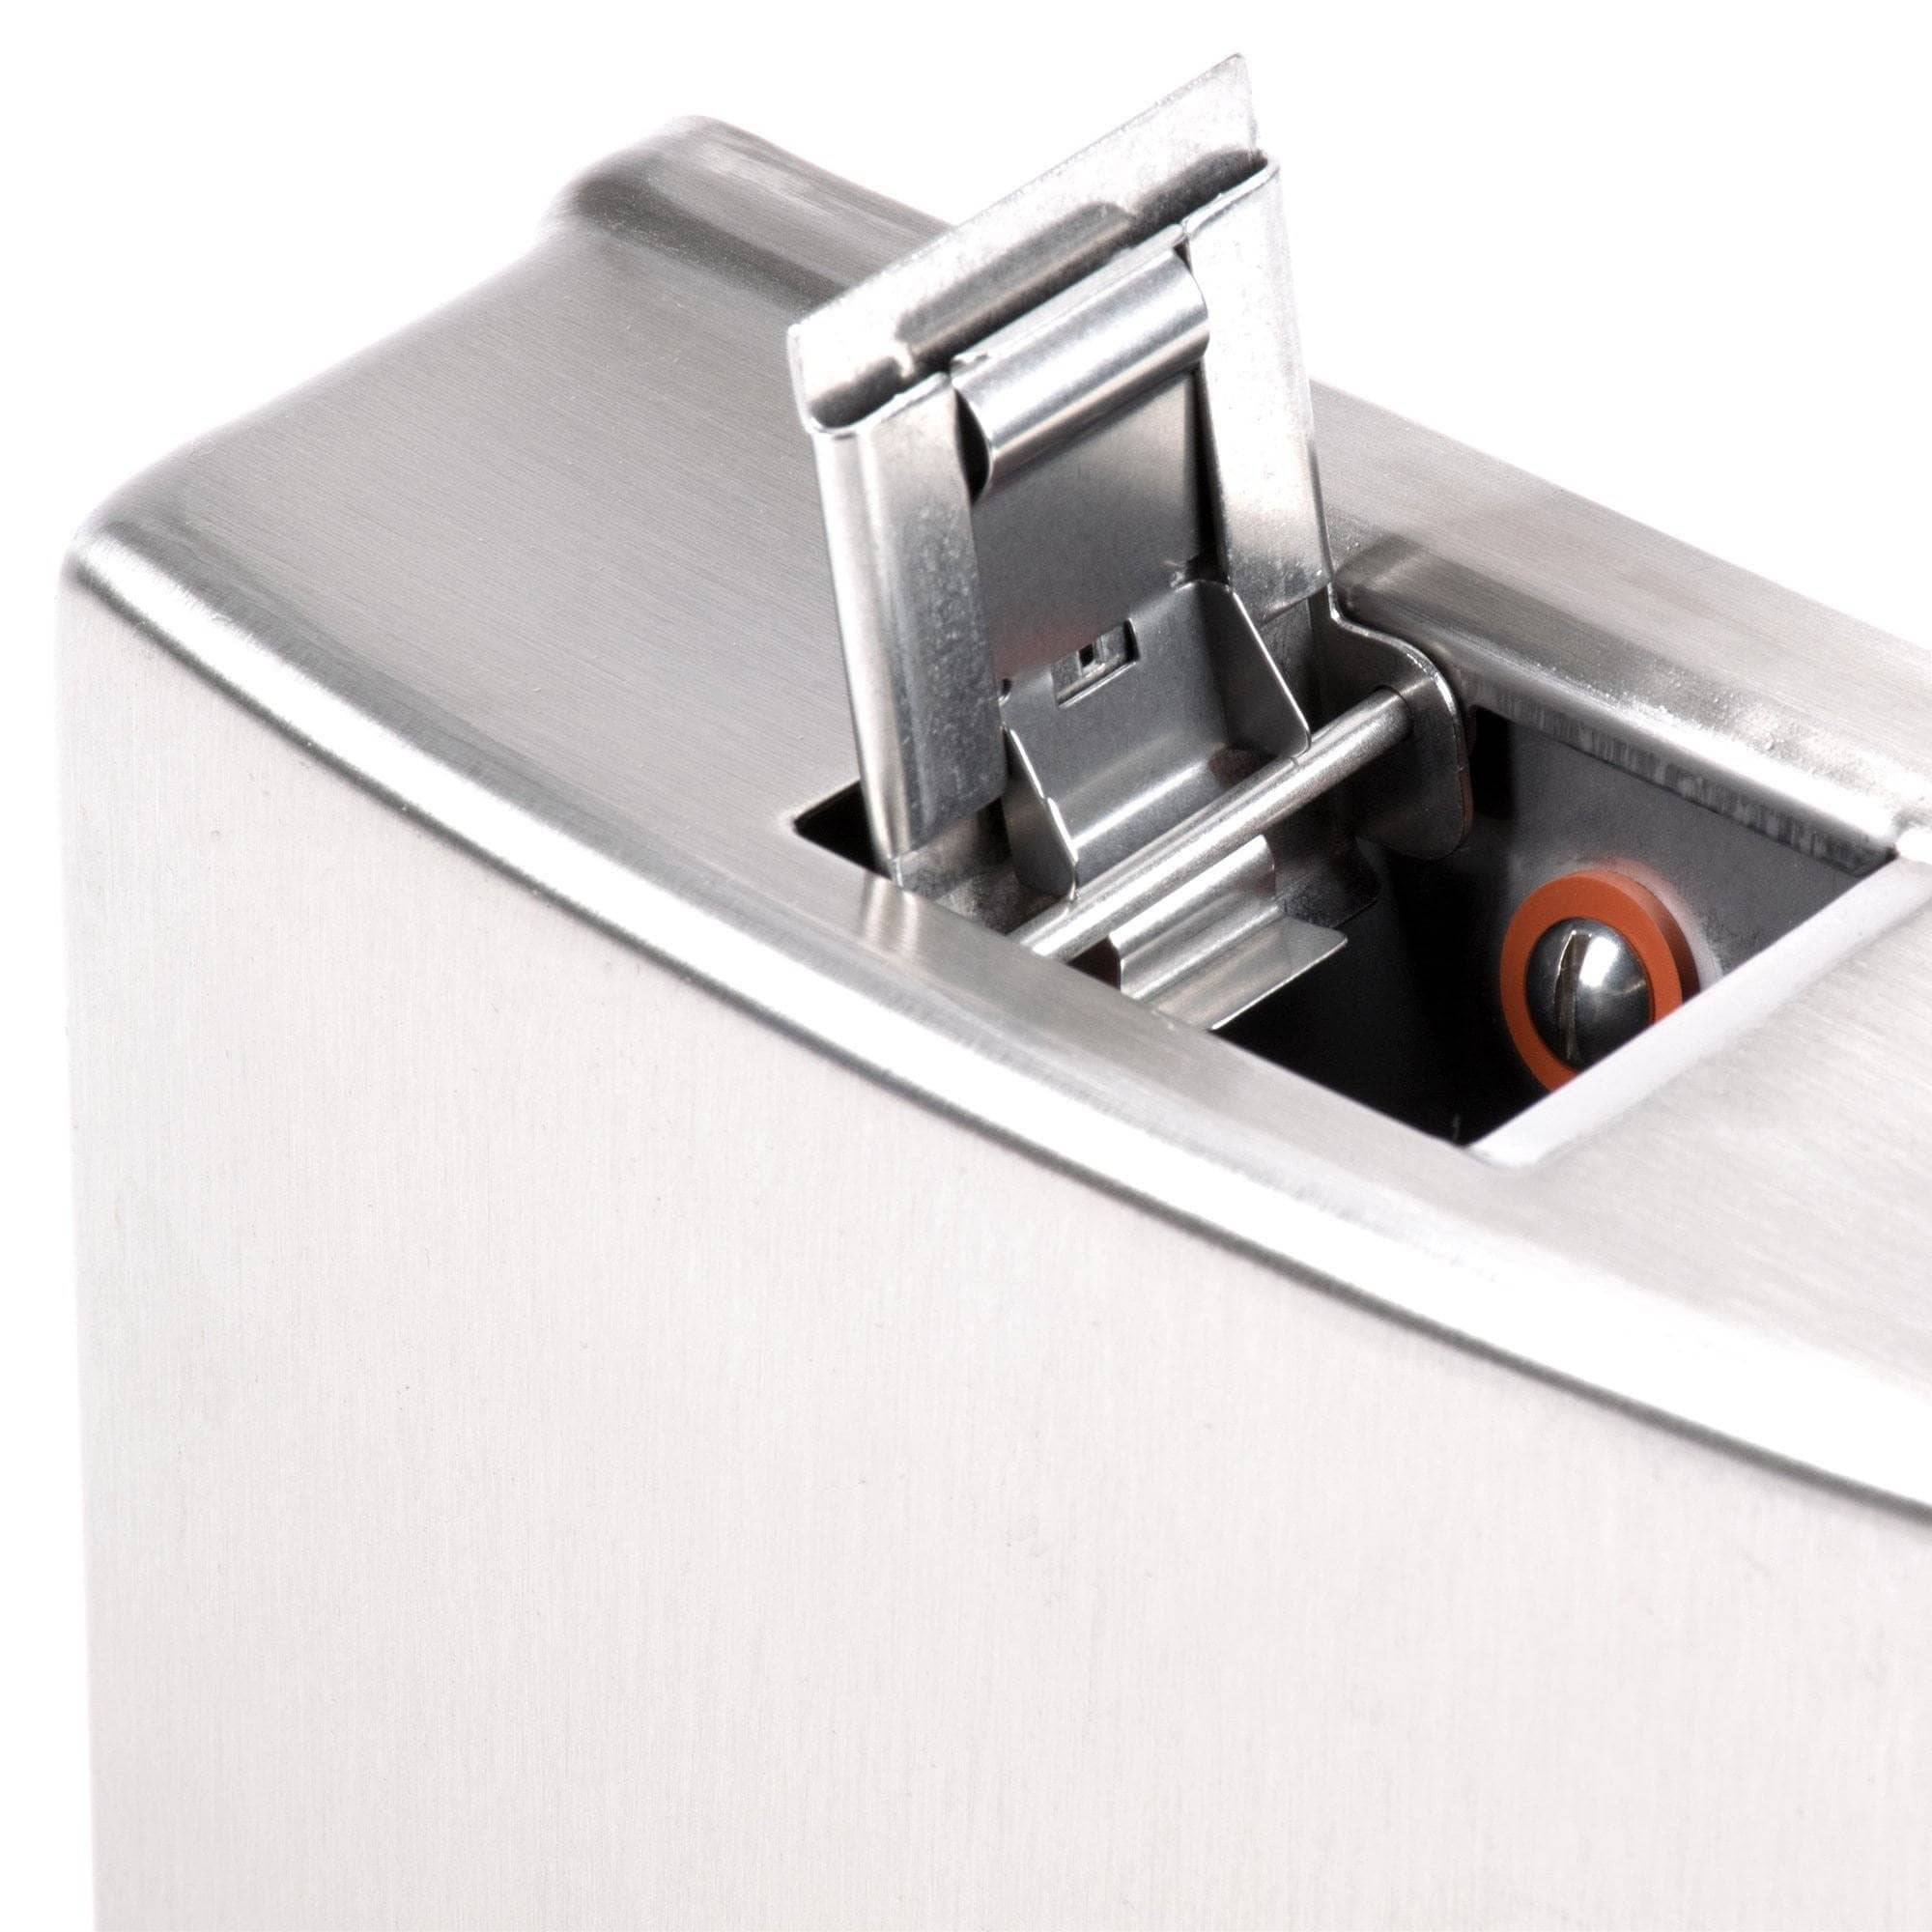 Bobrick B-4112 Commercial Soap Dispenser, Surface-Mounted, Manual-Push, Stainless Steel - 40 Oz - TotalRestroom.com